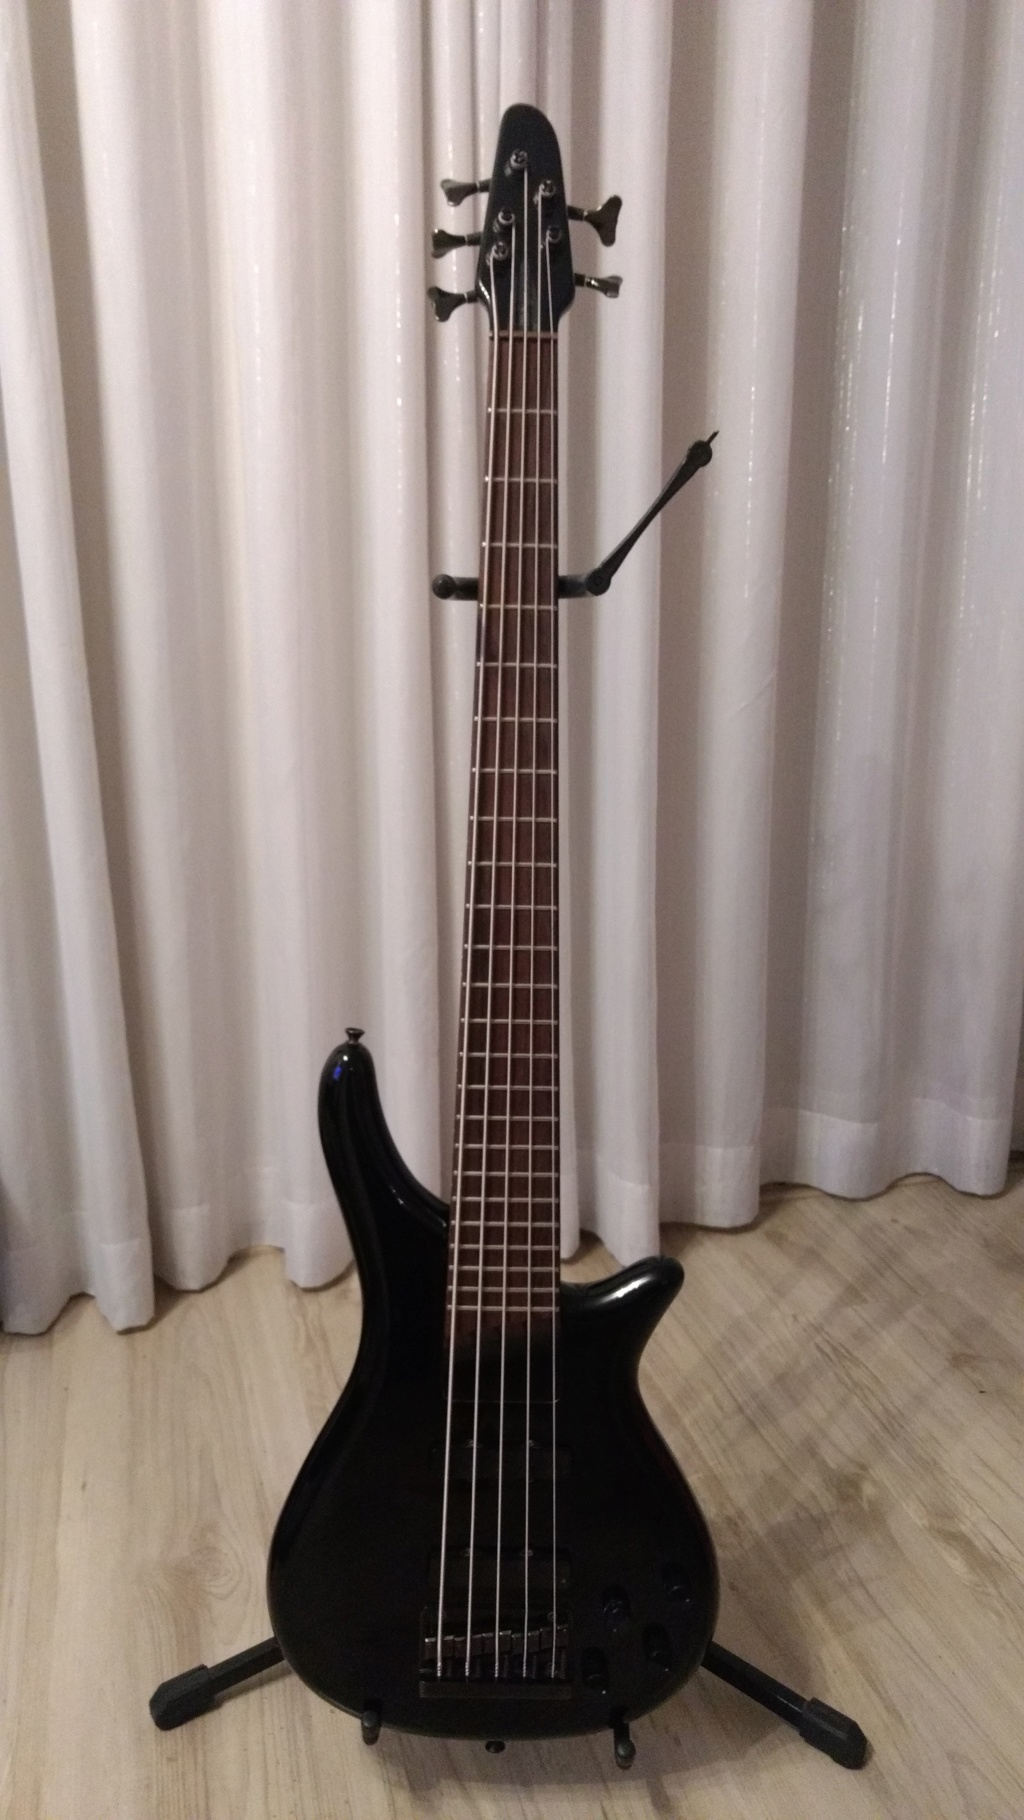 Clube Japanese Basses from the 80's - Página 4 Img_2013